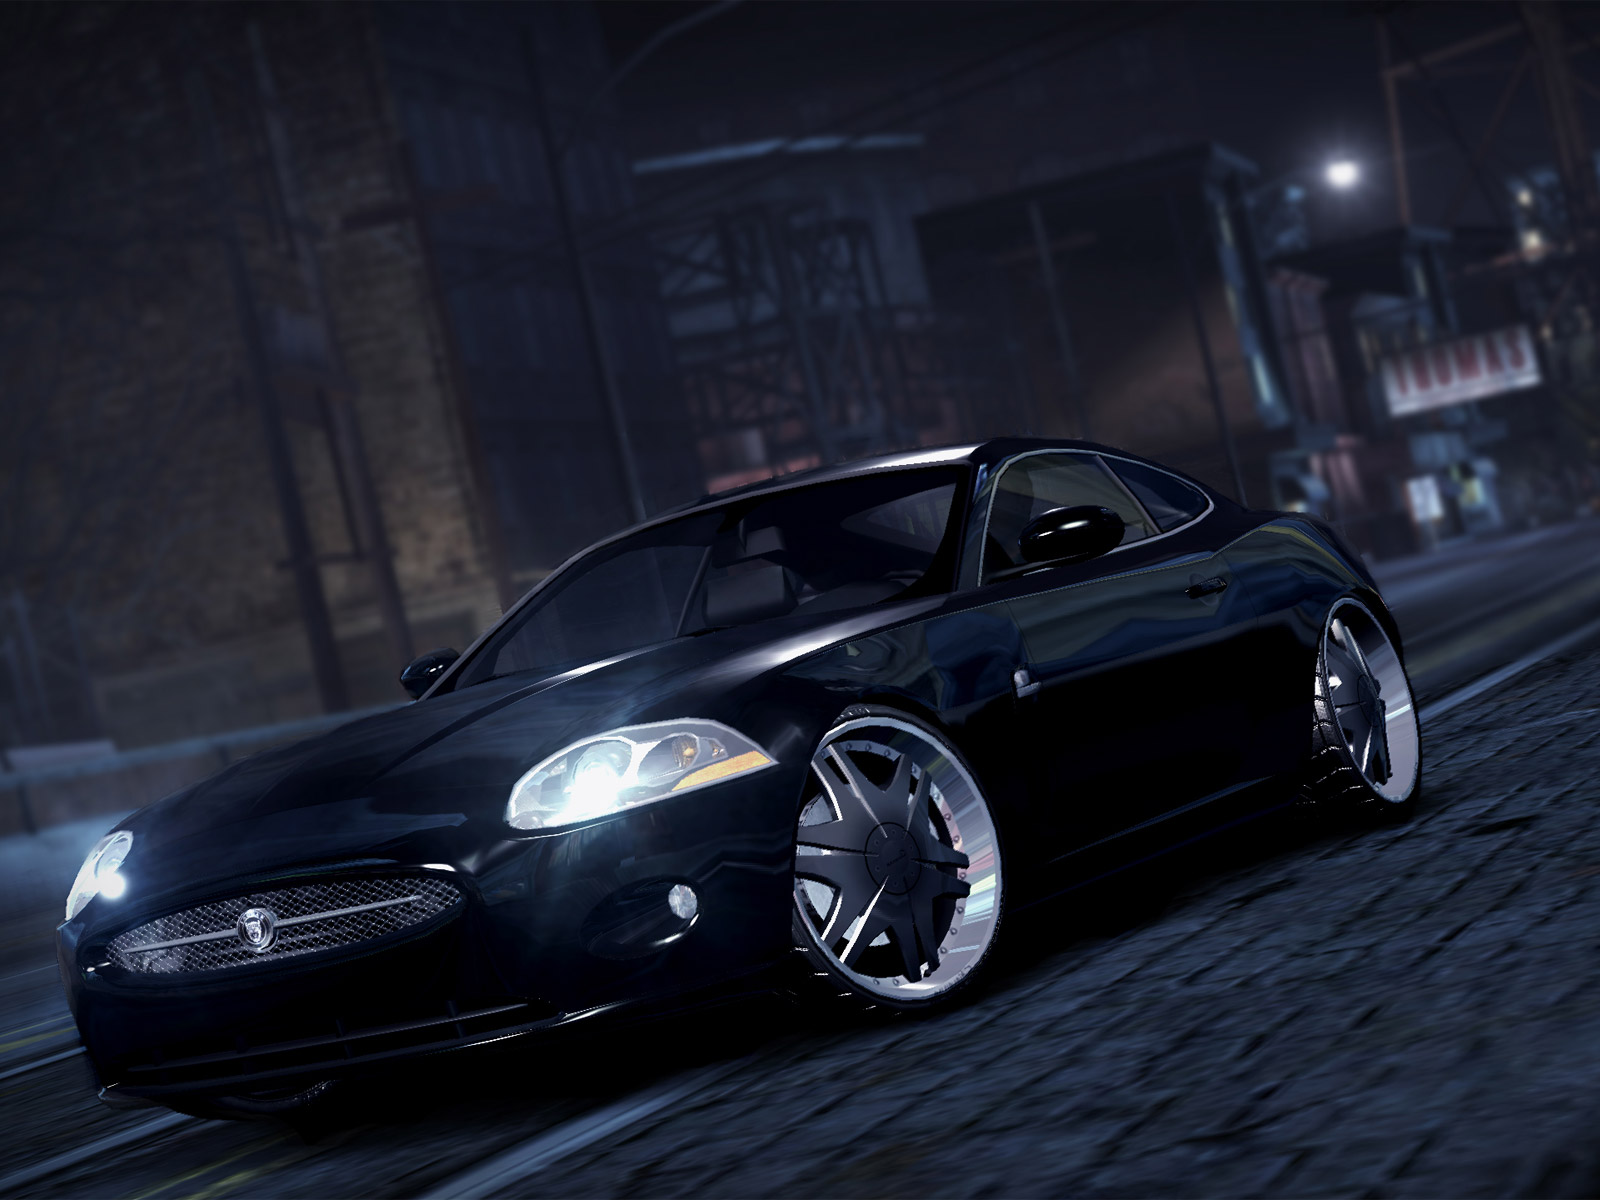 Need-For-Speed-Carbon-Wallpaper- Cool Nfs Undercover Ps2 Porsche 911 Gt2 Cars Trend